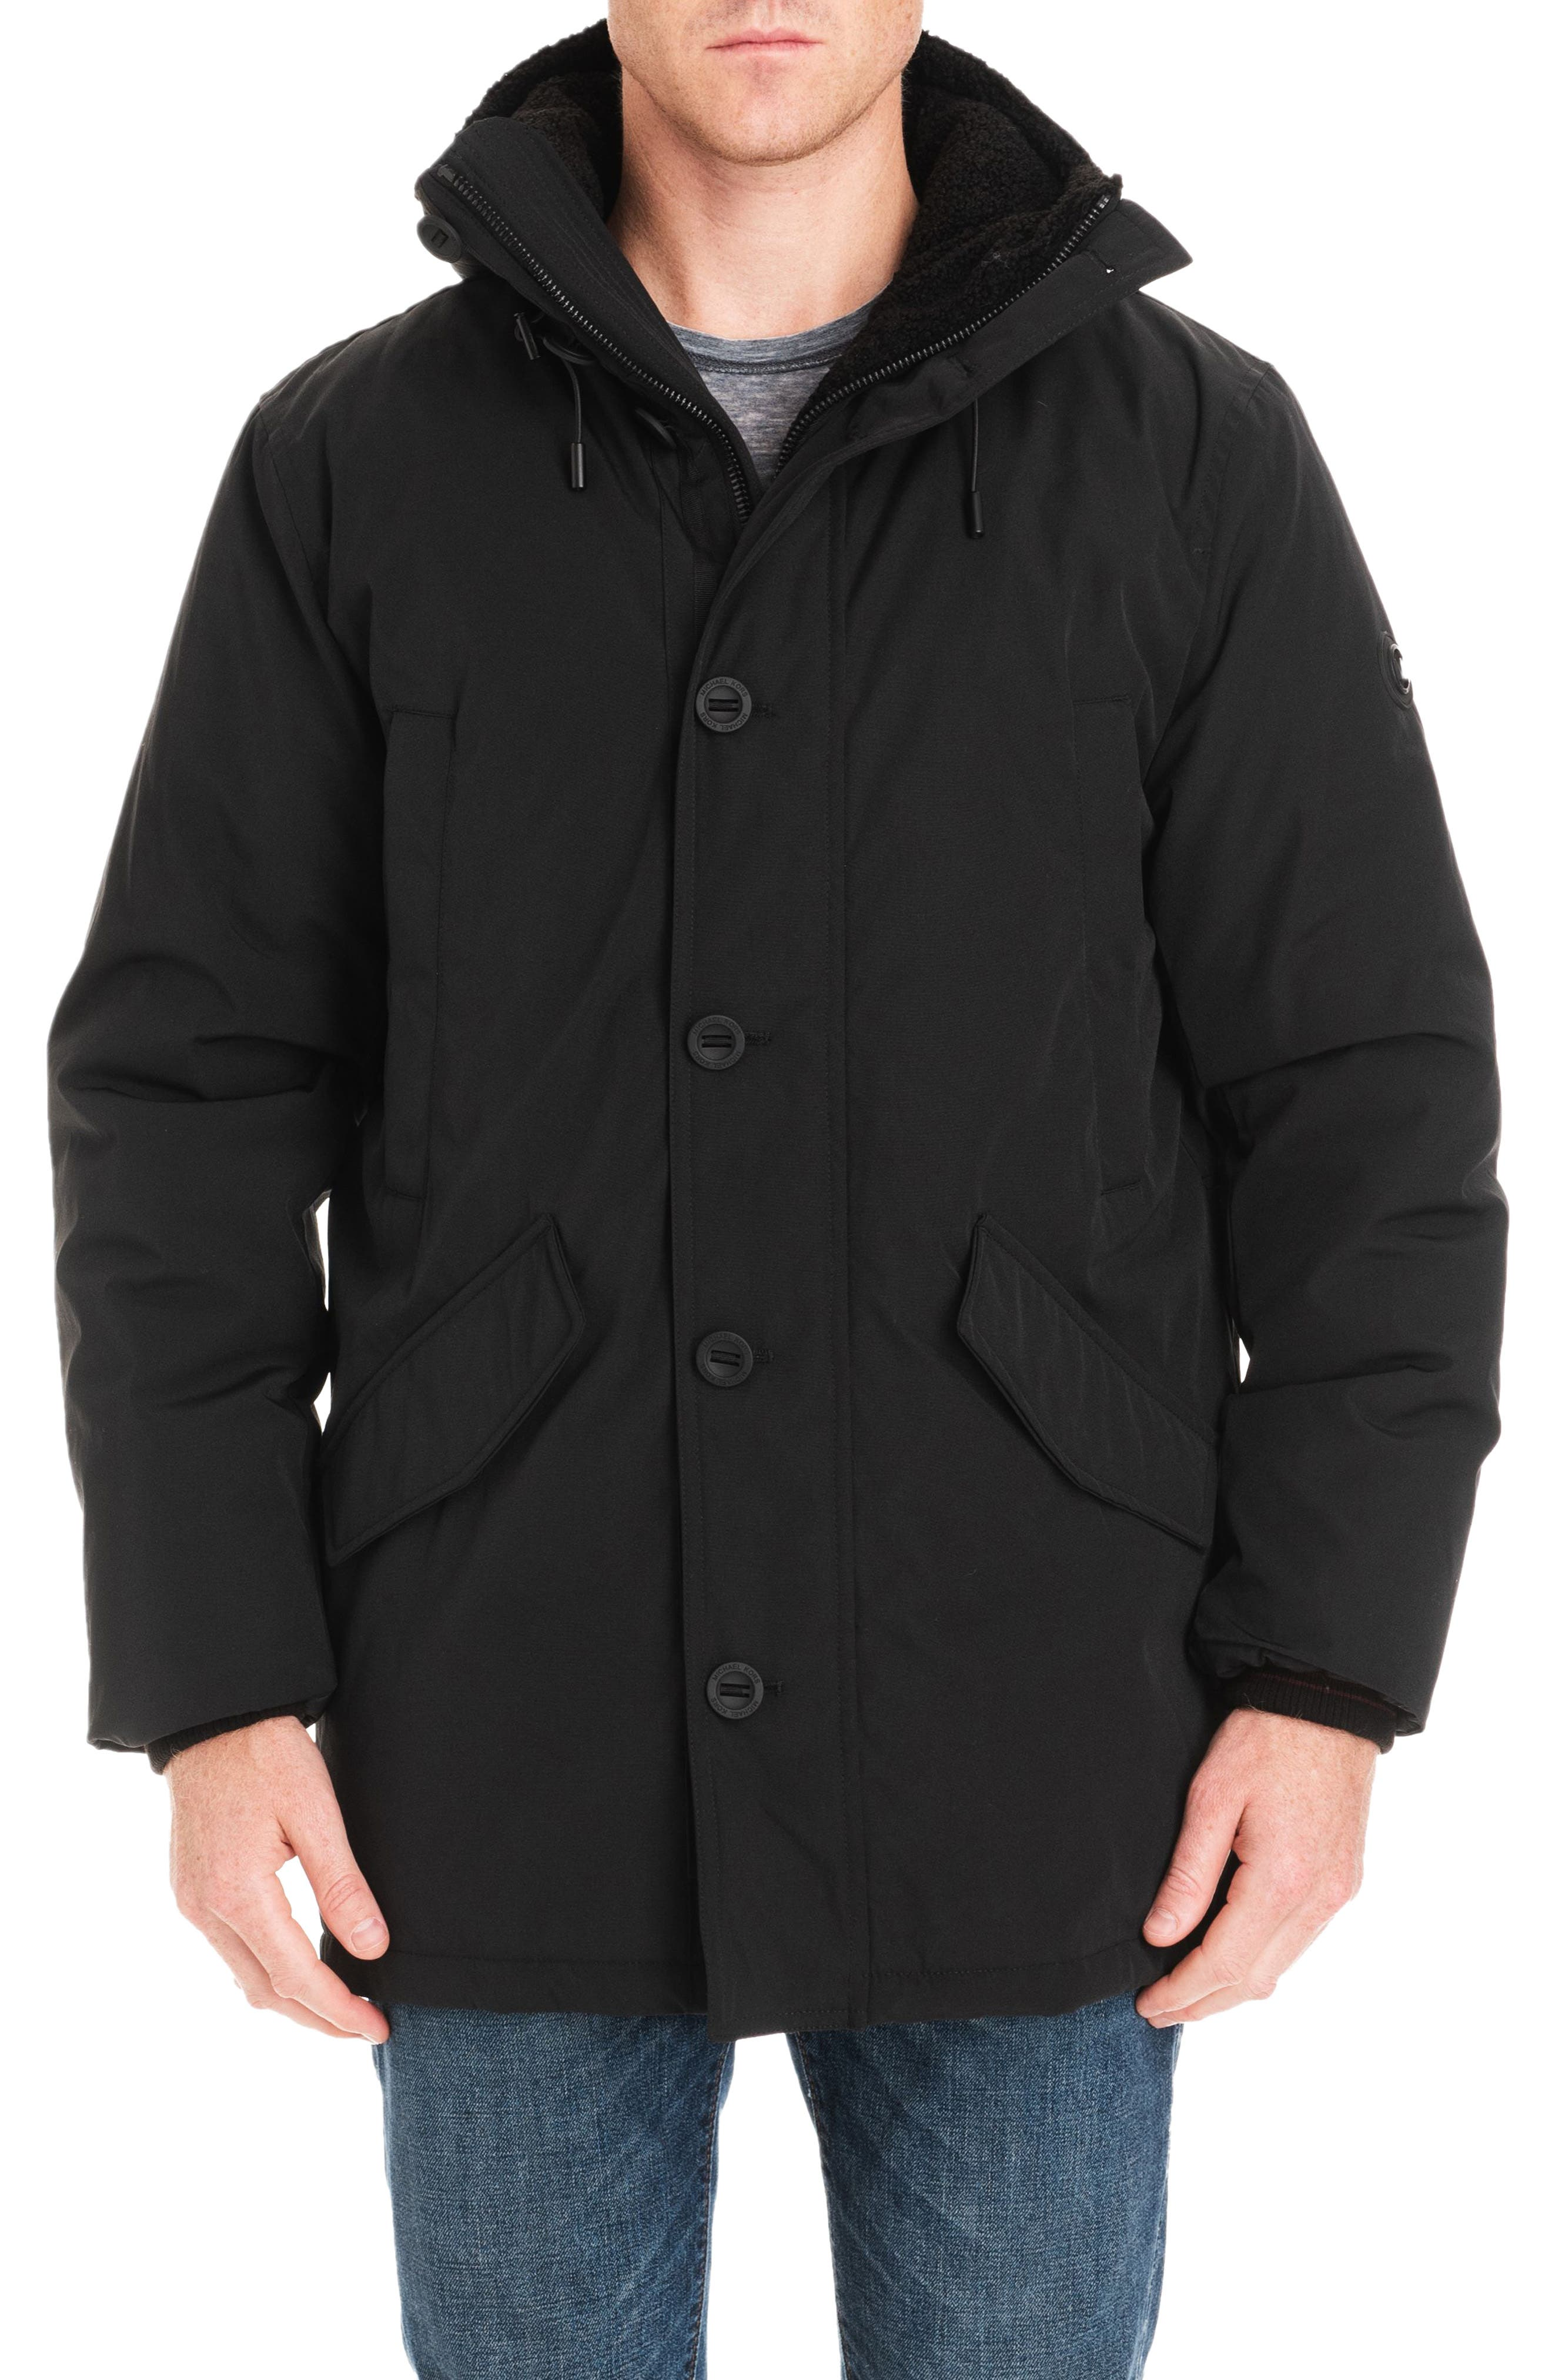 Lafayette Water Resistant Coat with Faux Shearling Lining,                         Main,                         color, BLACK